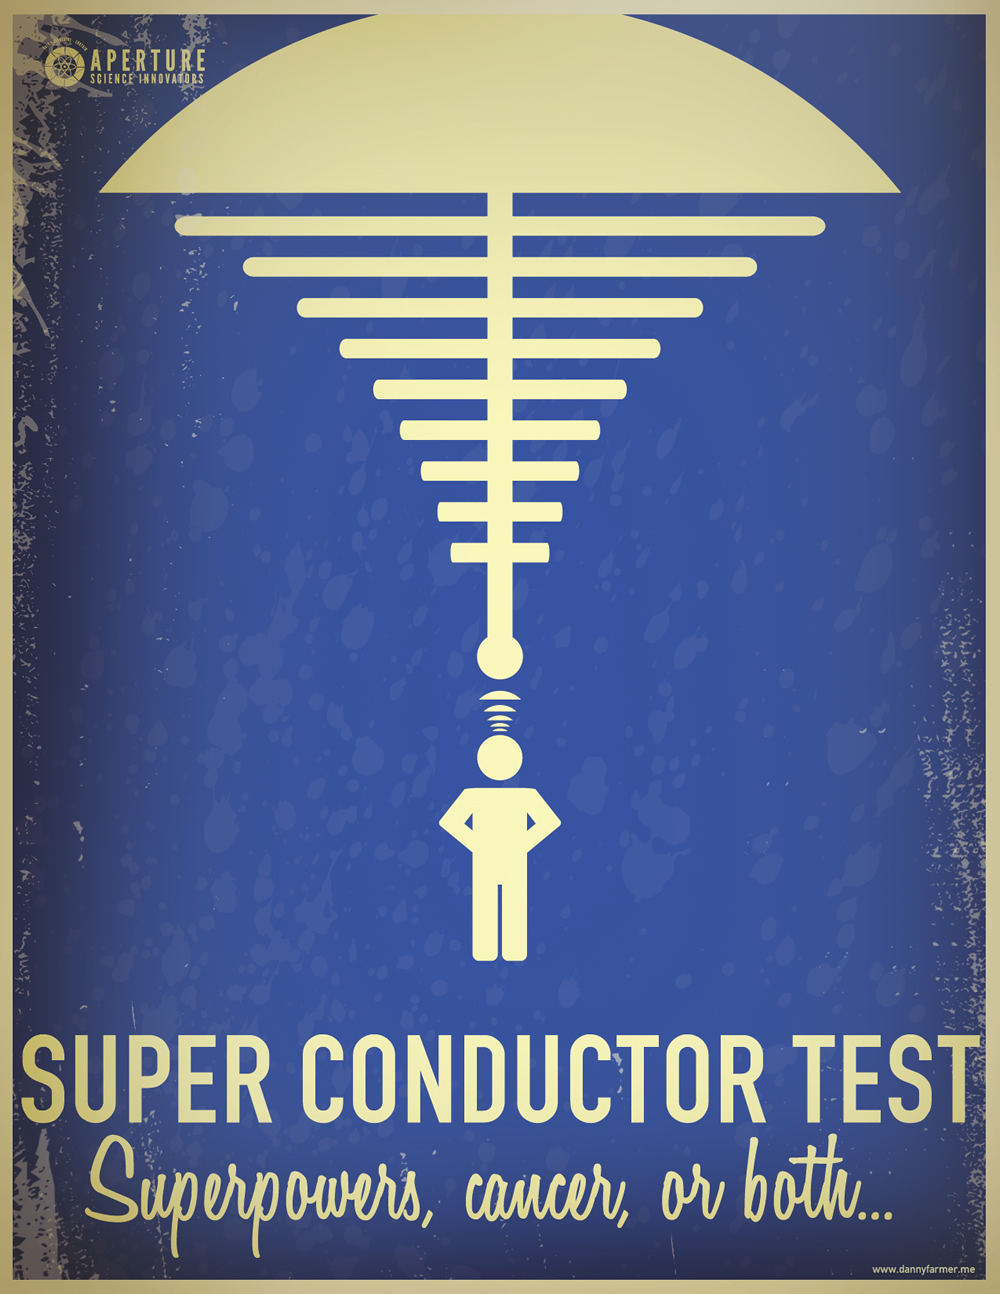 Super Conductor test superpowers, cancer or both